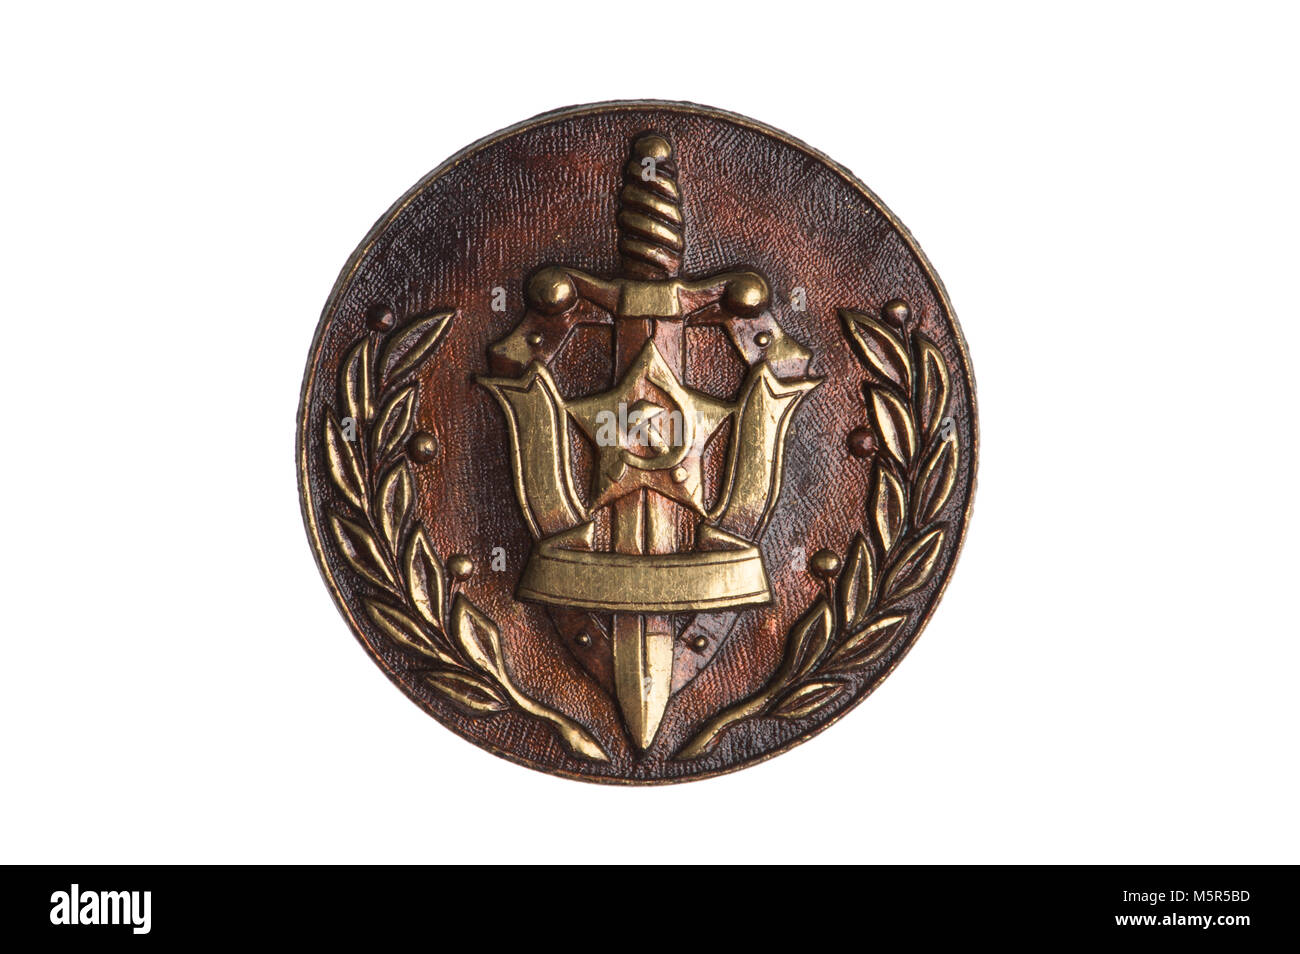 badge of Soviet times Committee of State Security KGB - Stock Image